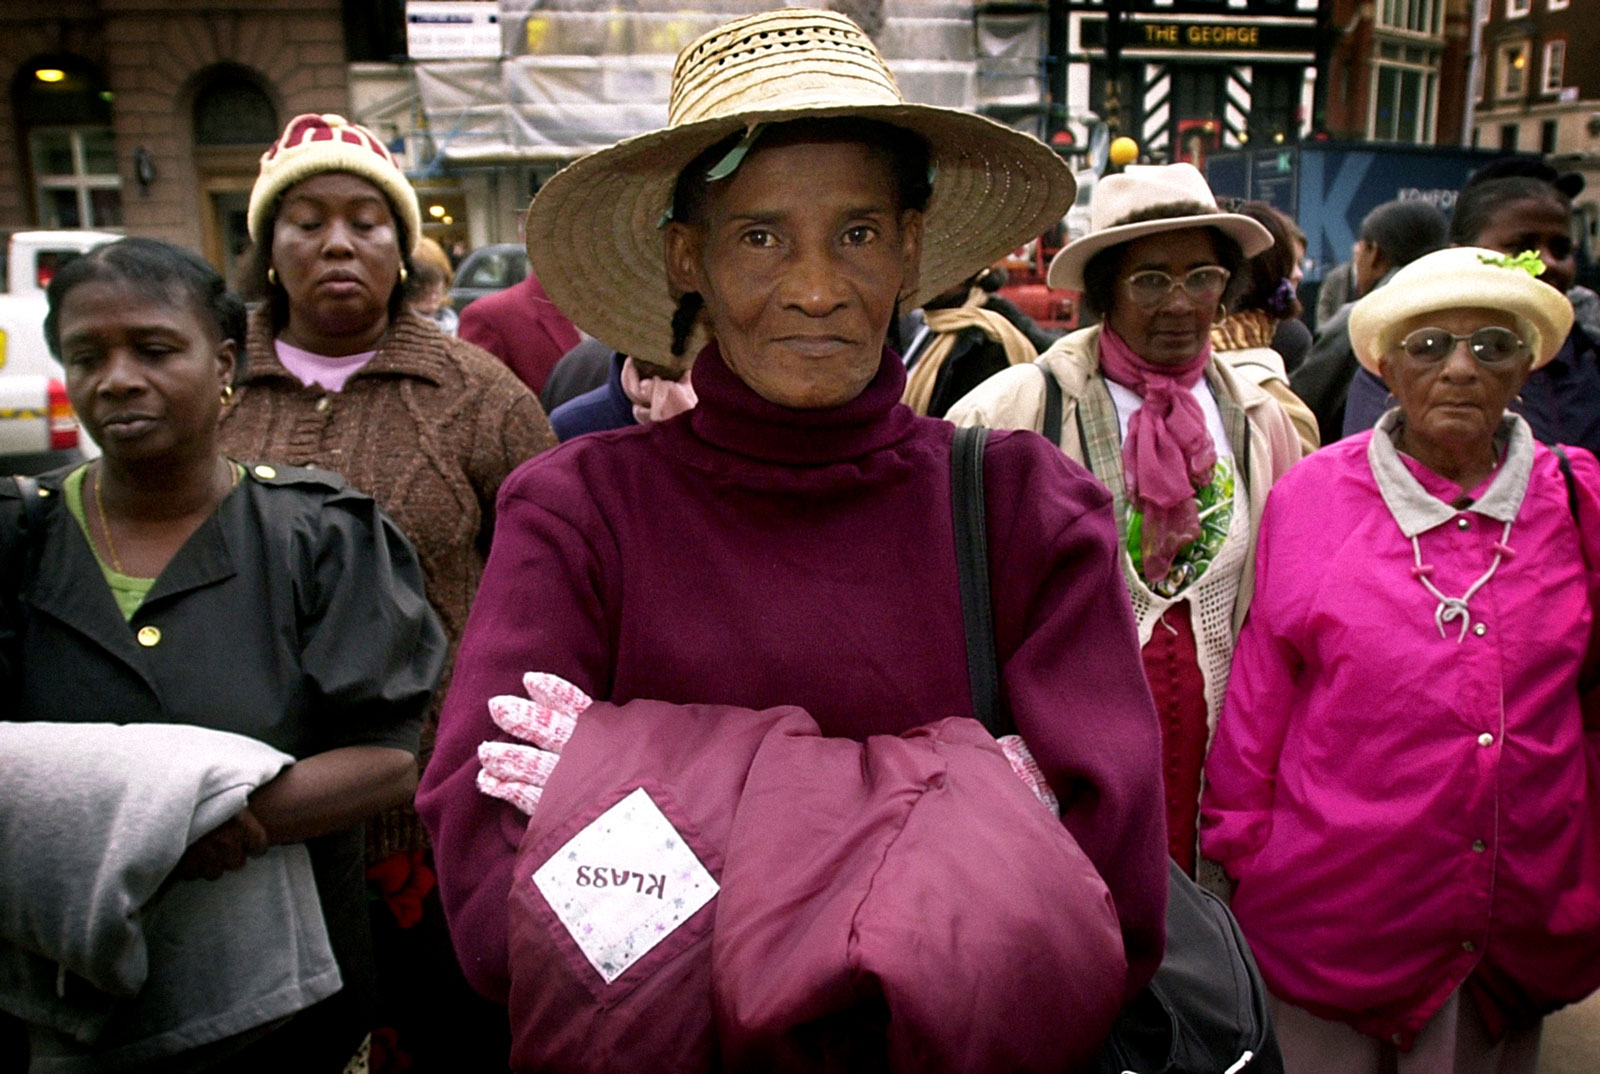 Former inhabitants of Chagos Archipelago, the last British colony in Africa, claiming compensation for being exiled from their homes, High Court, London, October 31, 2002